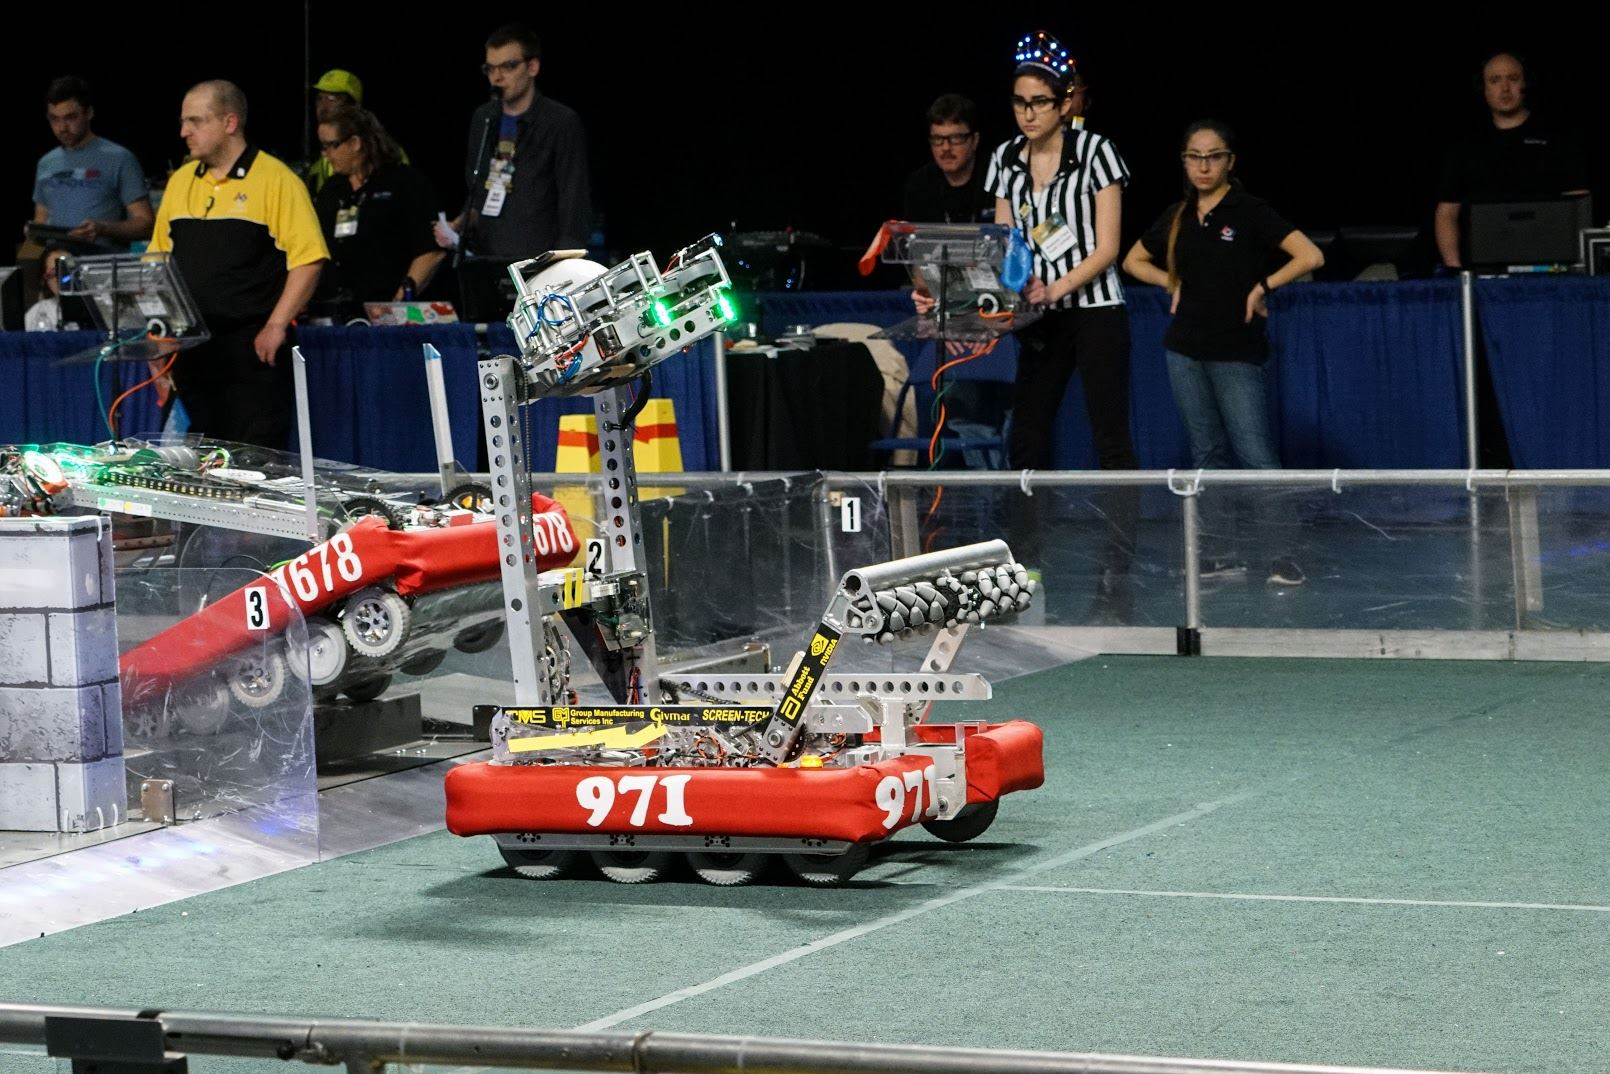 MVHS_Robotics_Teams.jpg